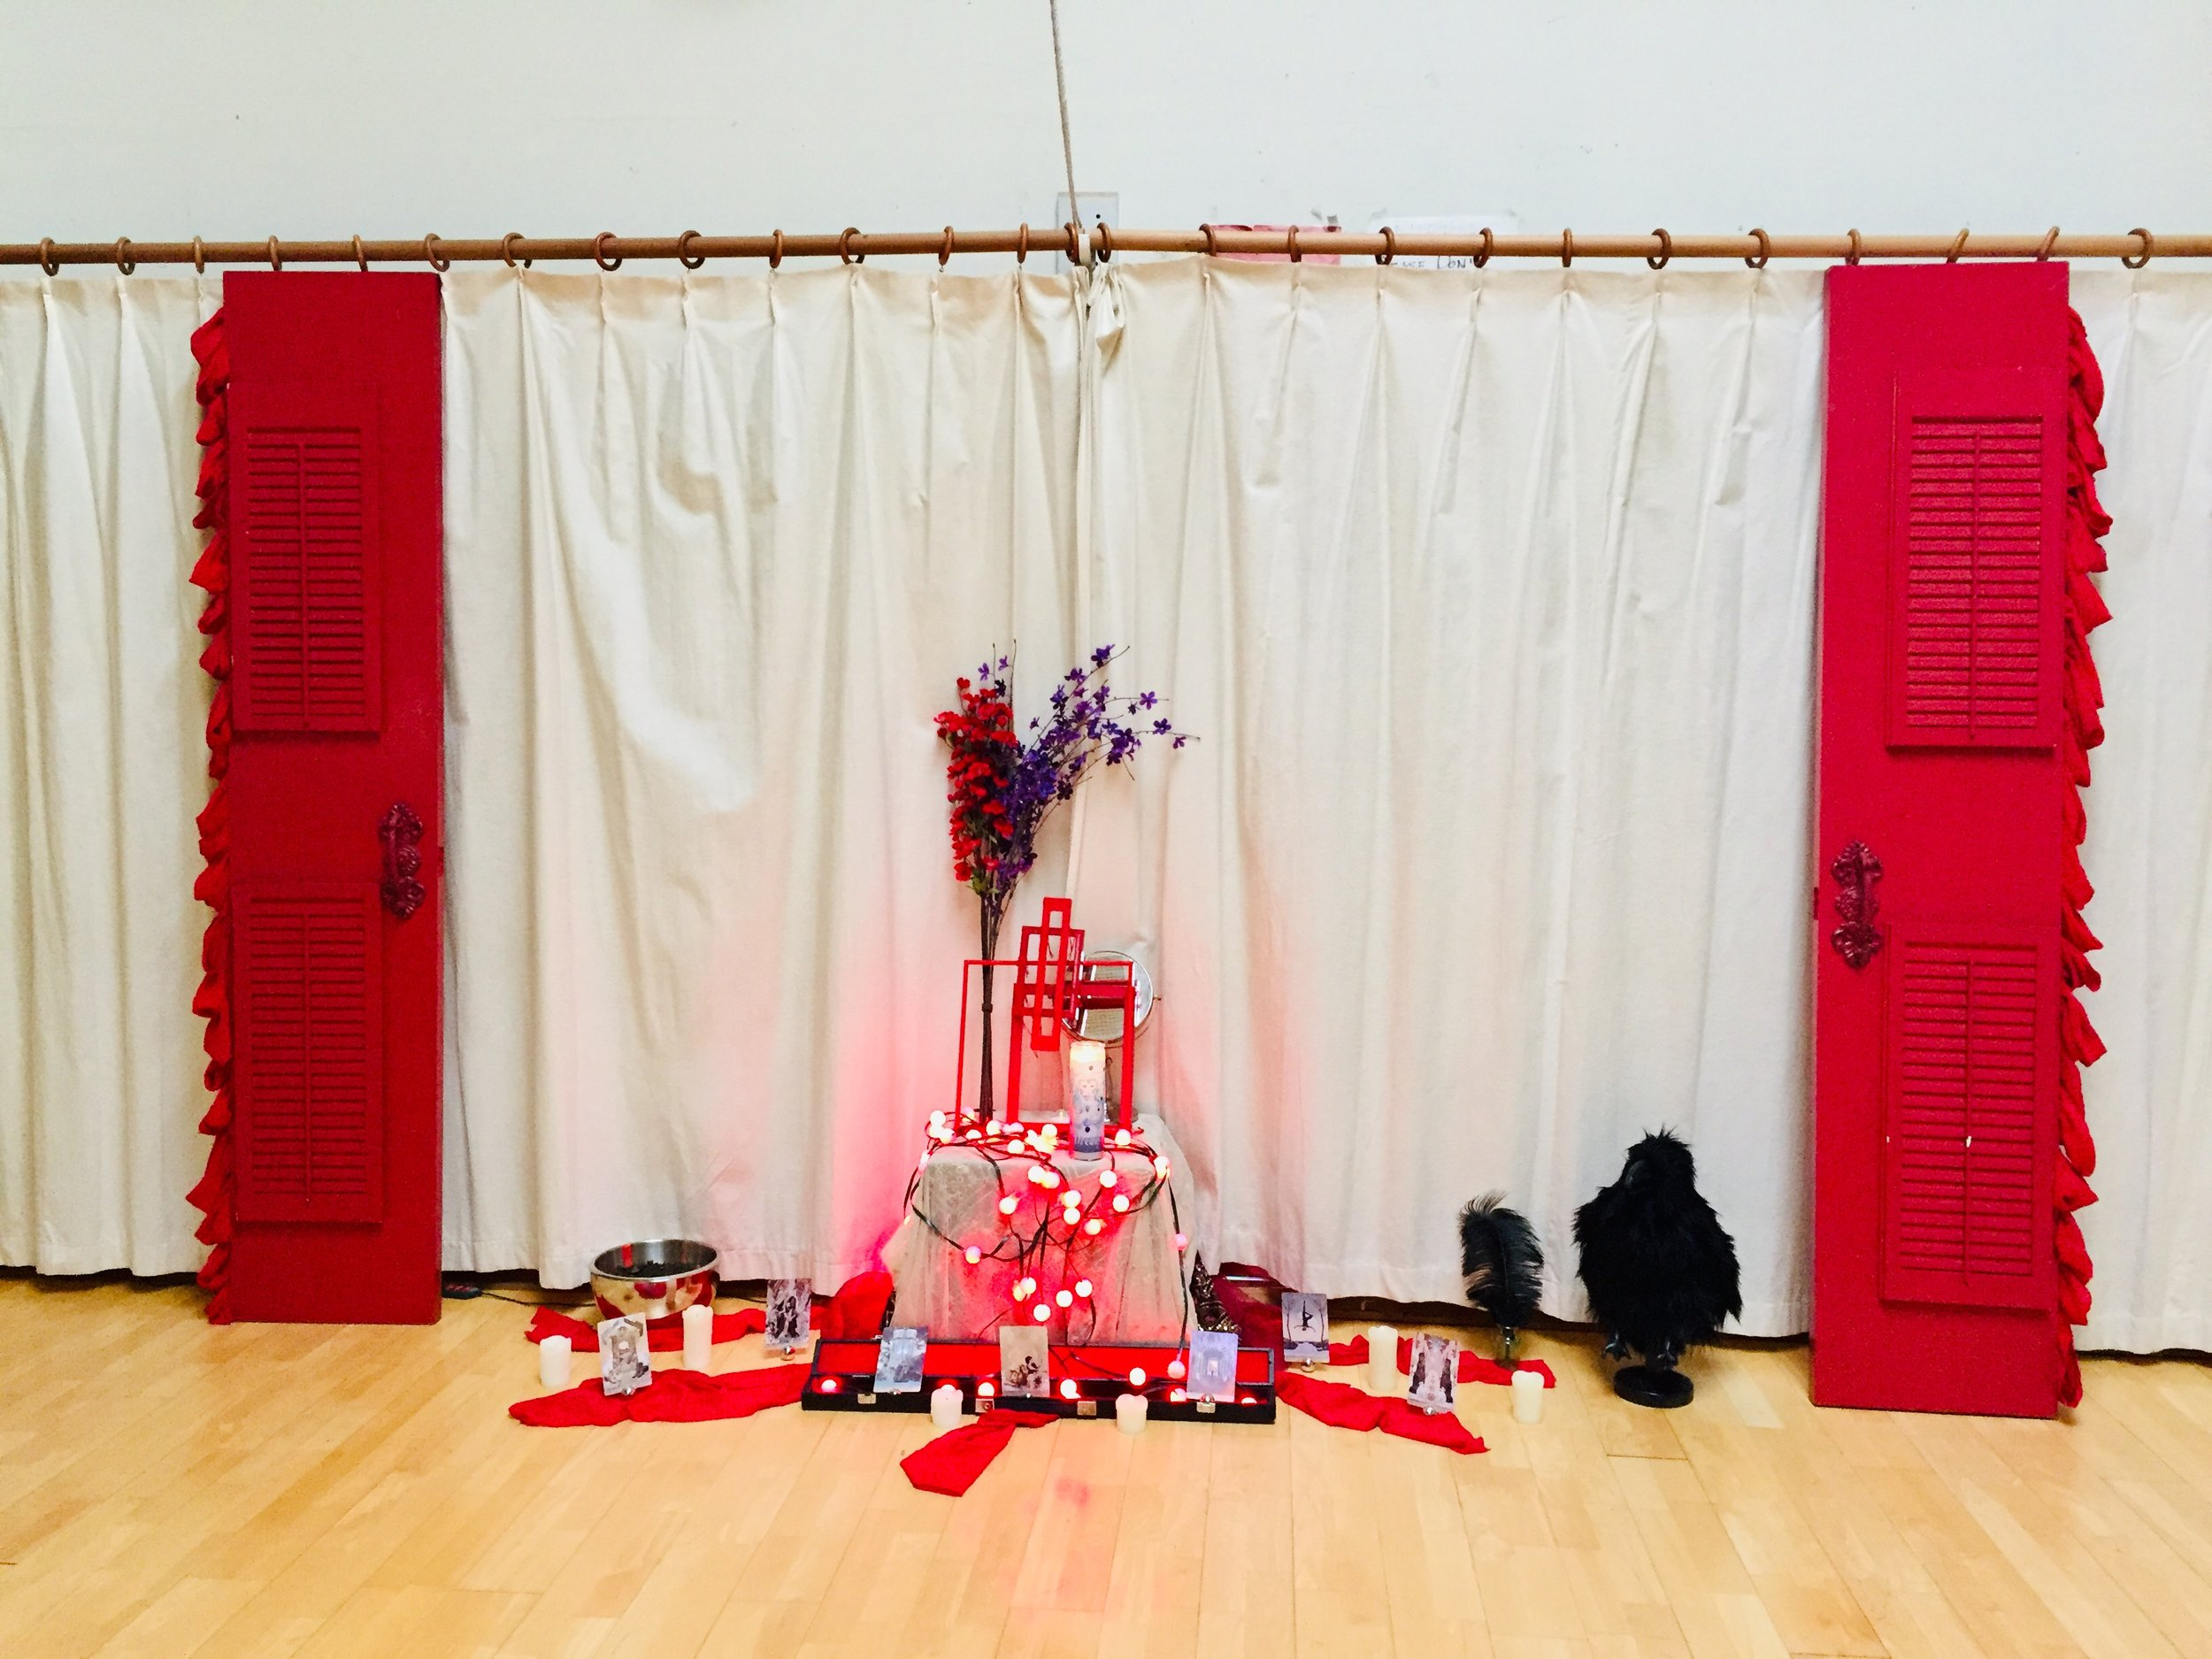 Red Door Altar Installation - Day 2 - Stop : : Earth & Shadows